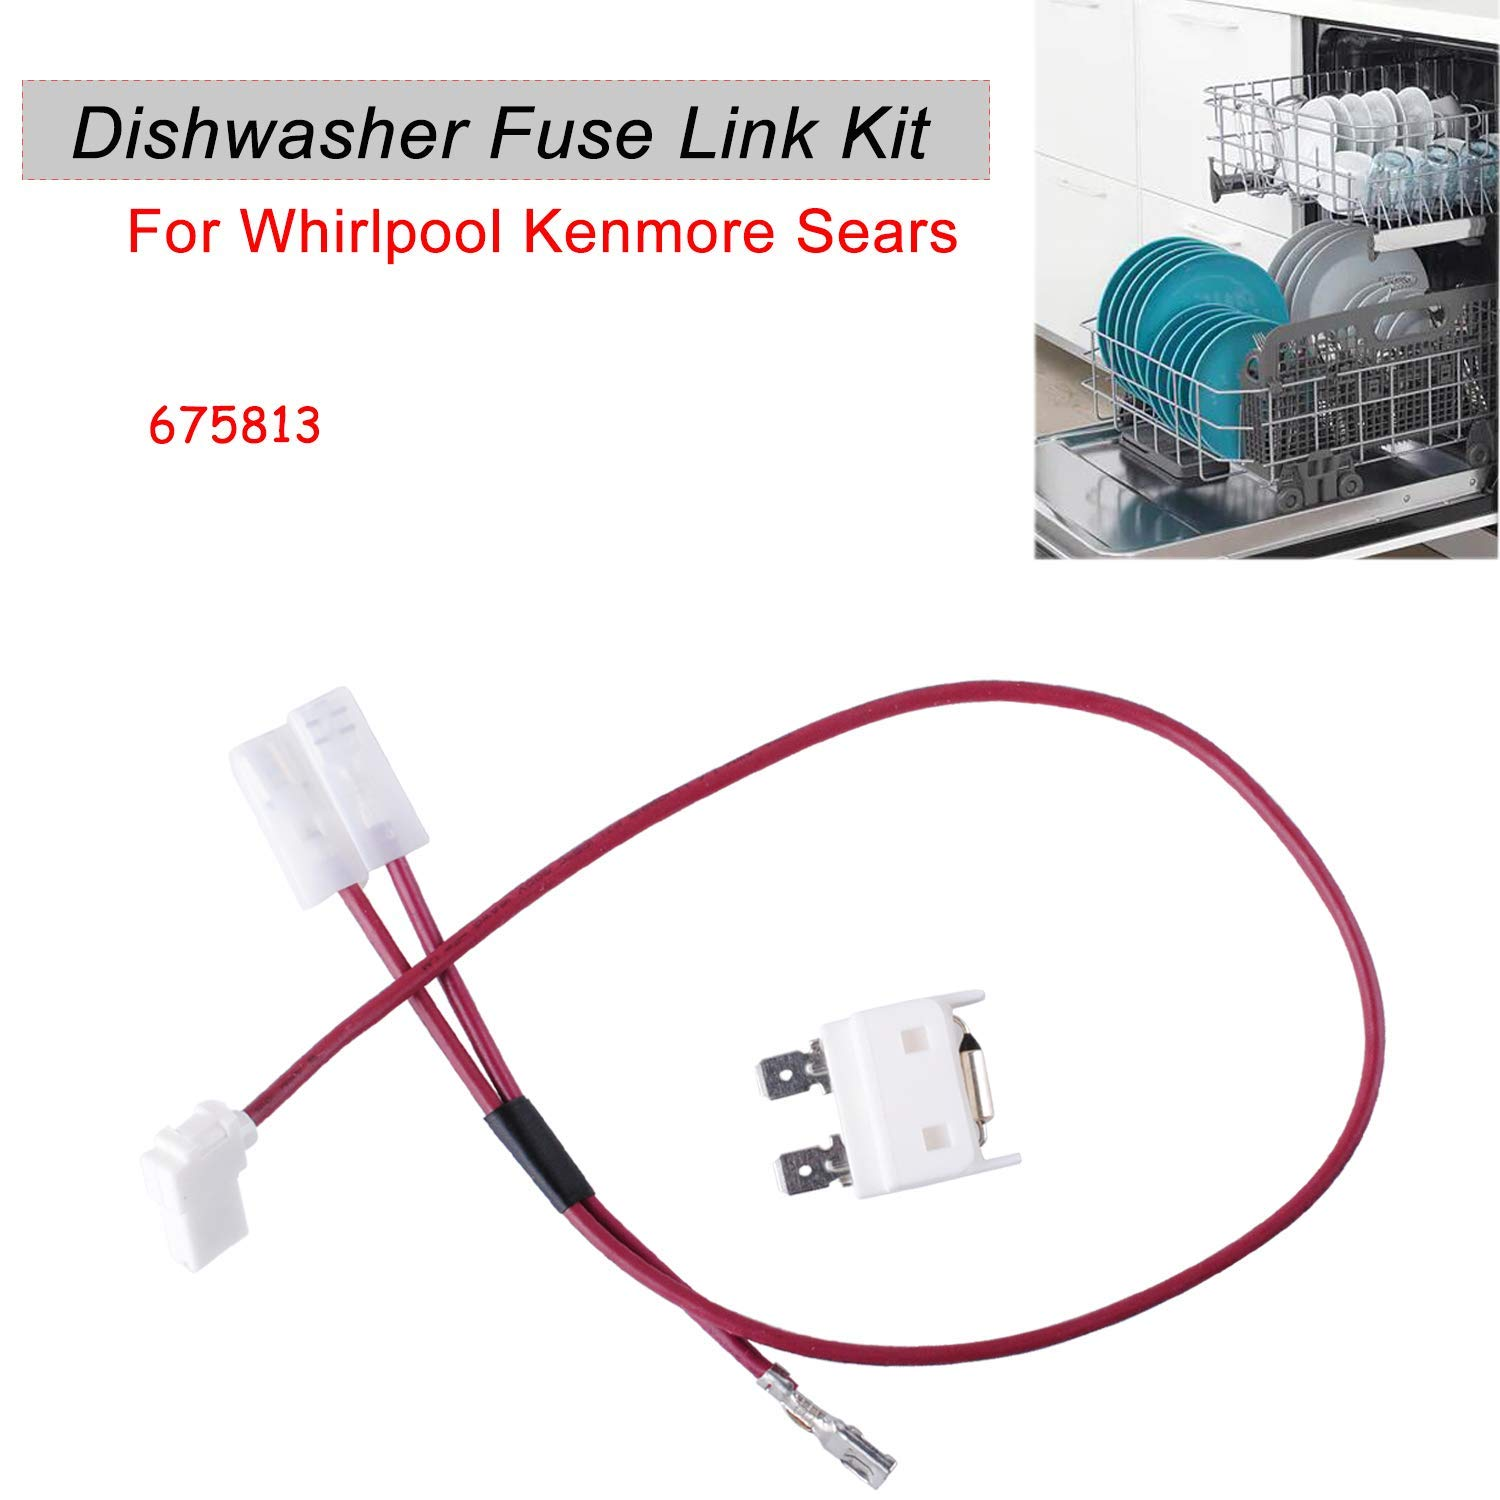 675813 Dishwasher Thermal Fuse Replacement for Whirlpool Kenmore Dishwasher Door Switch - Replace PS382828 AP3115186 3375557 3376359